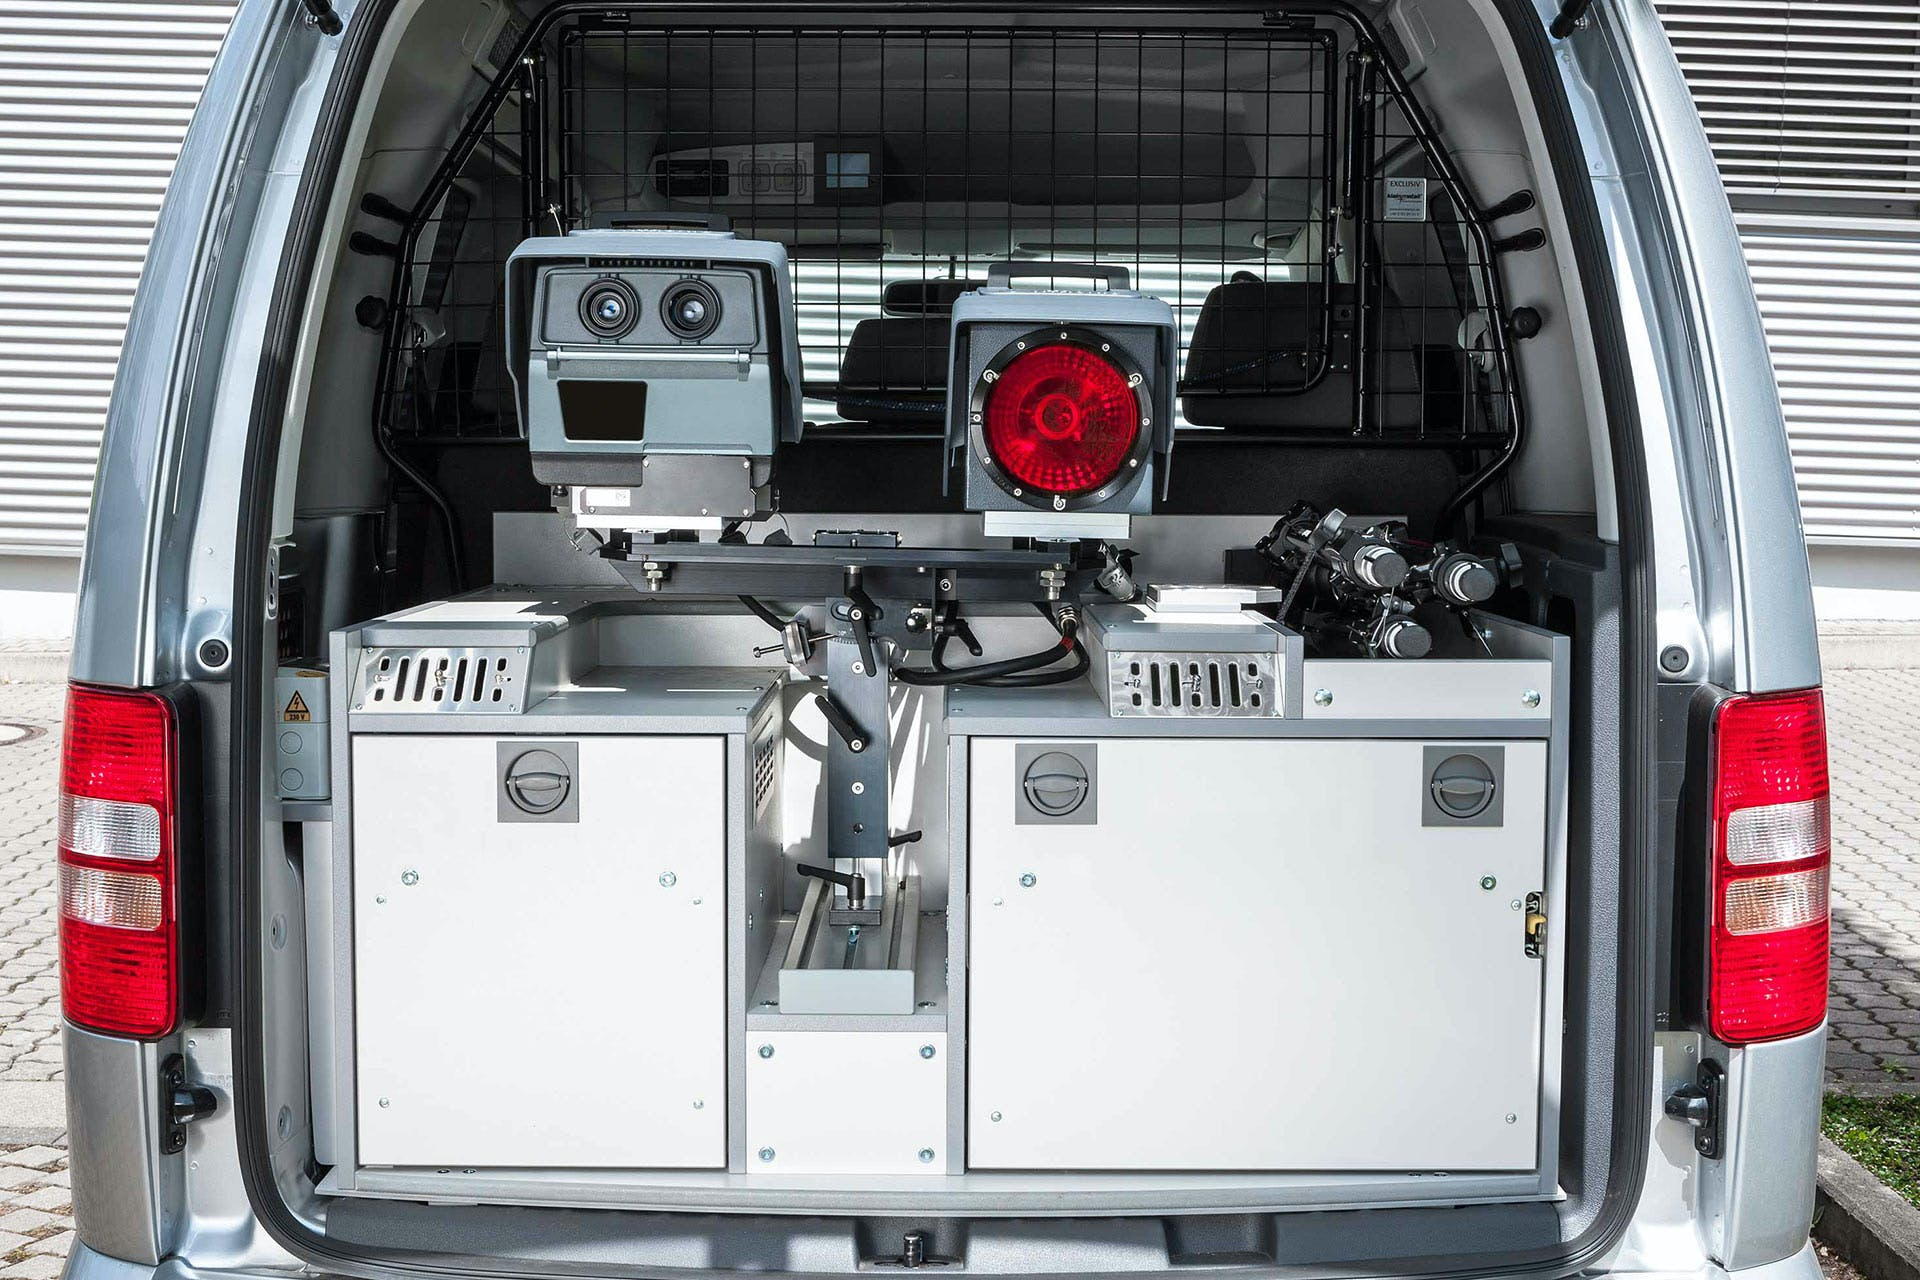 VITRONIC Australia awarded a contract for mobile speed cameras